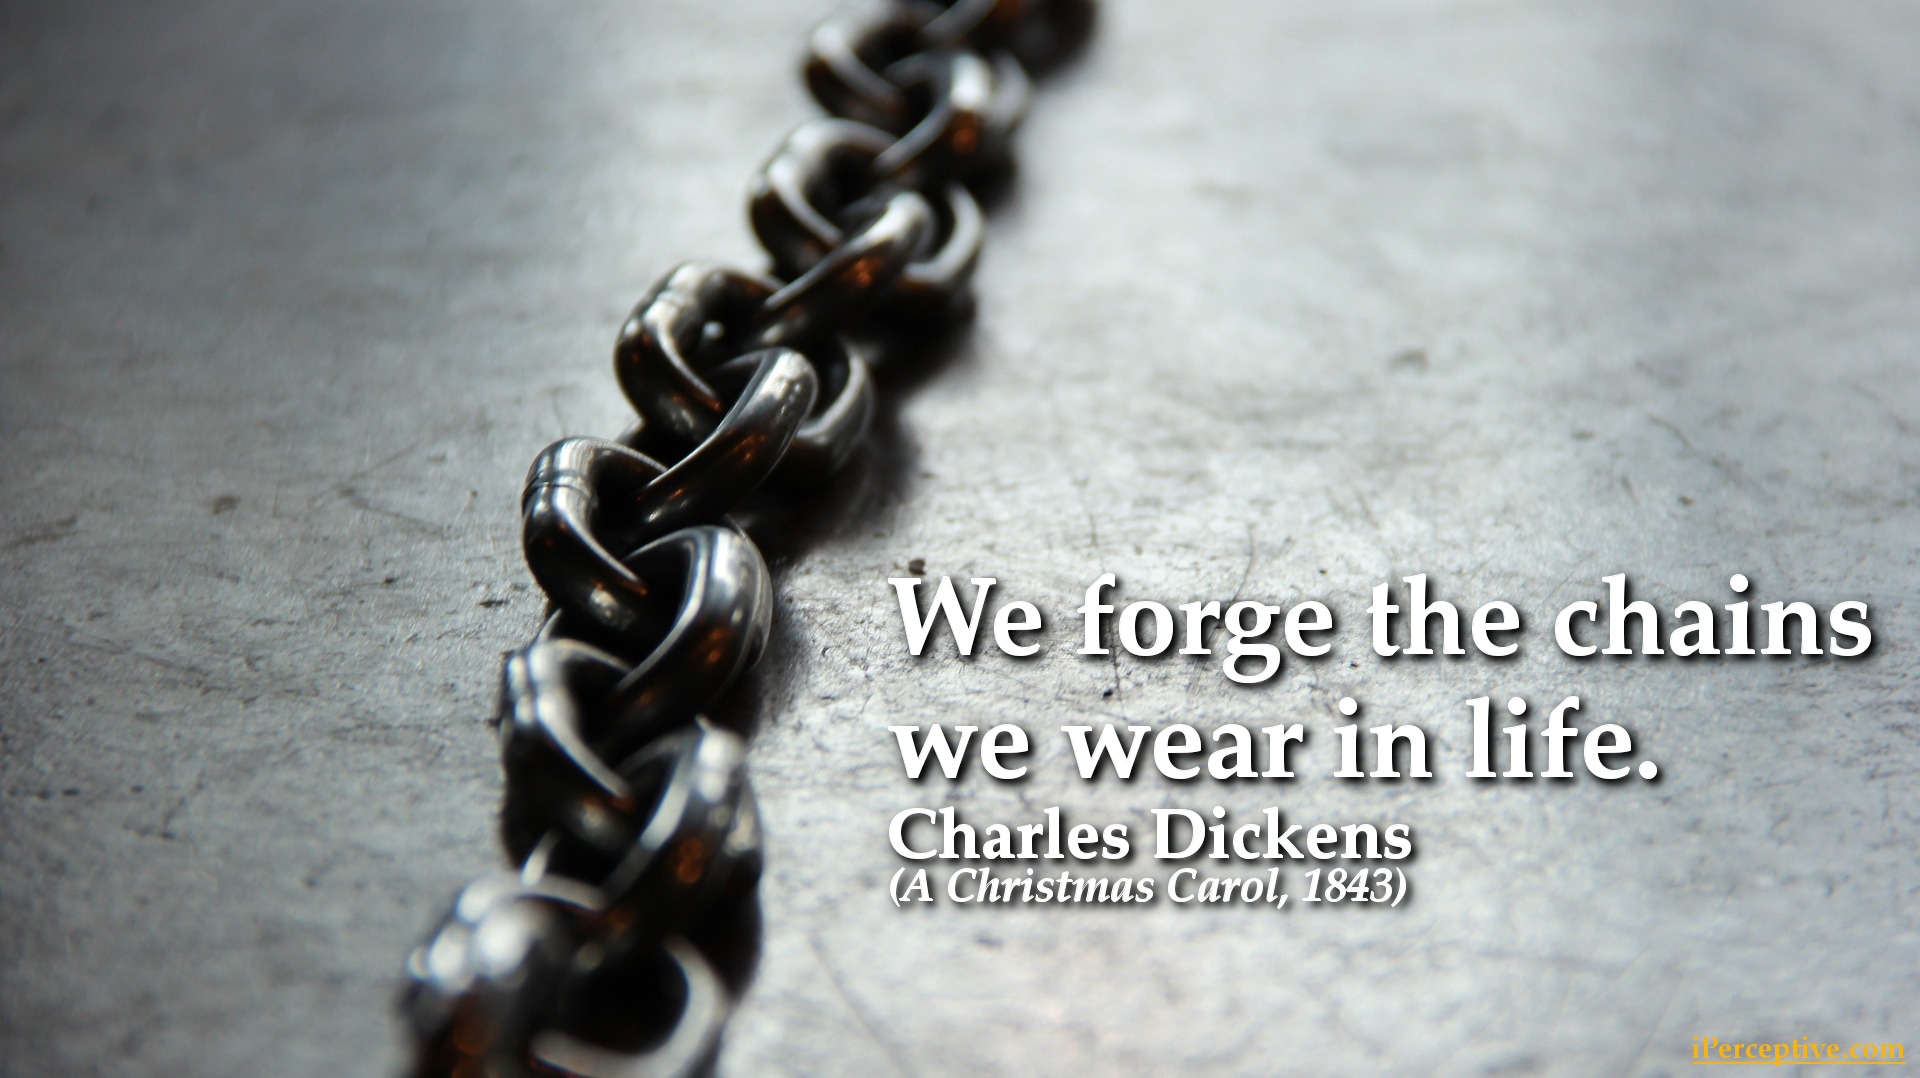 Charles Dickens Quote: We forge the chains we wear in life...